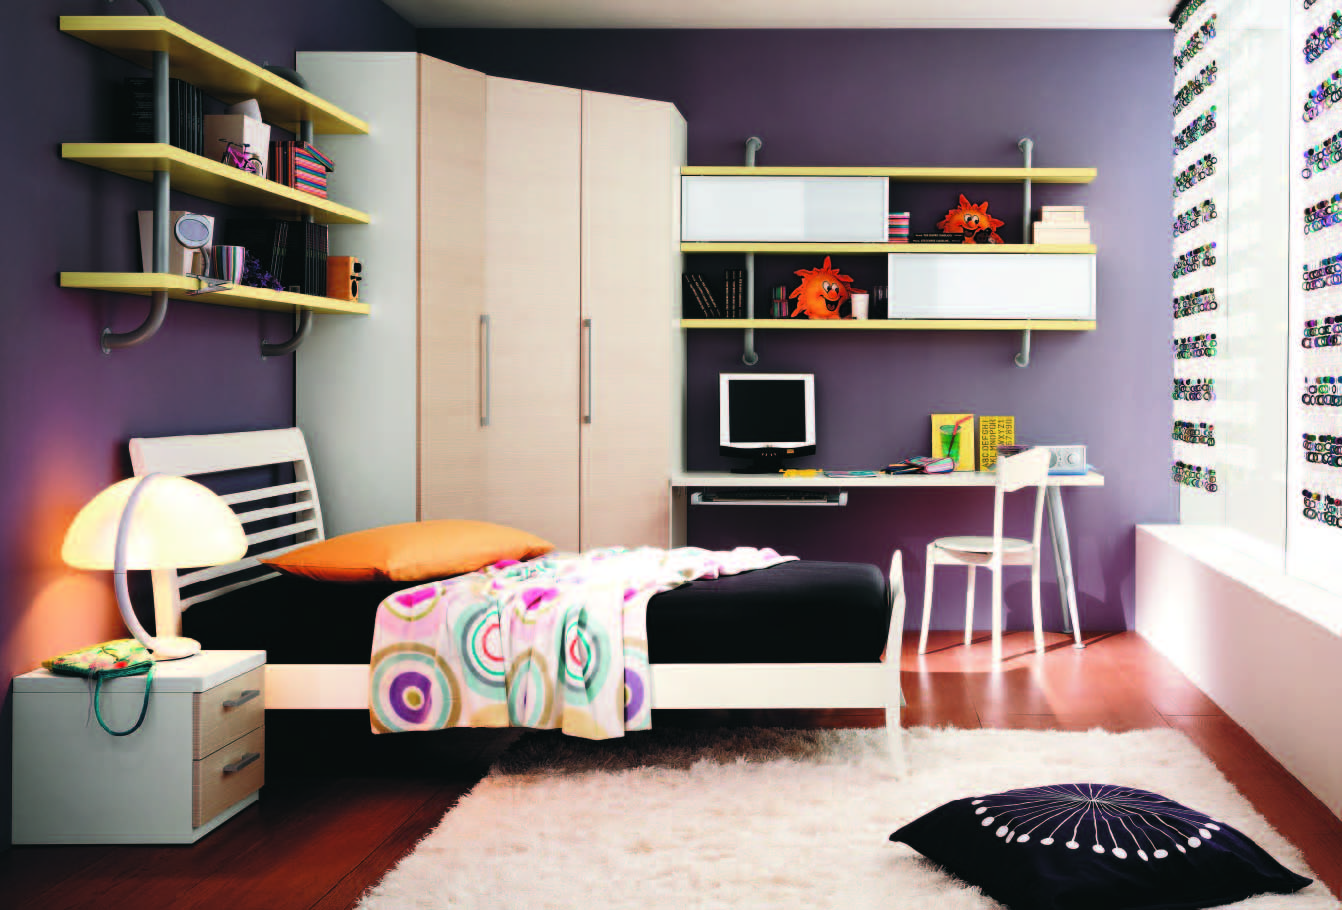 Fabulous modern themed rooms for boys and girls Bedroom designs for teenagers boys